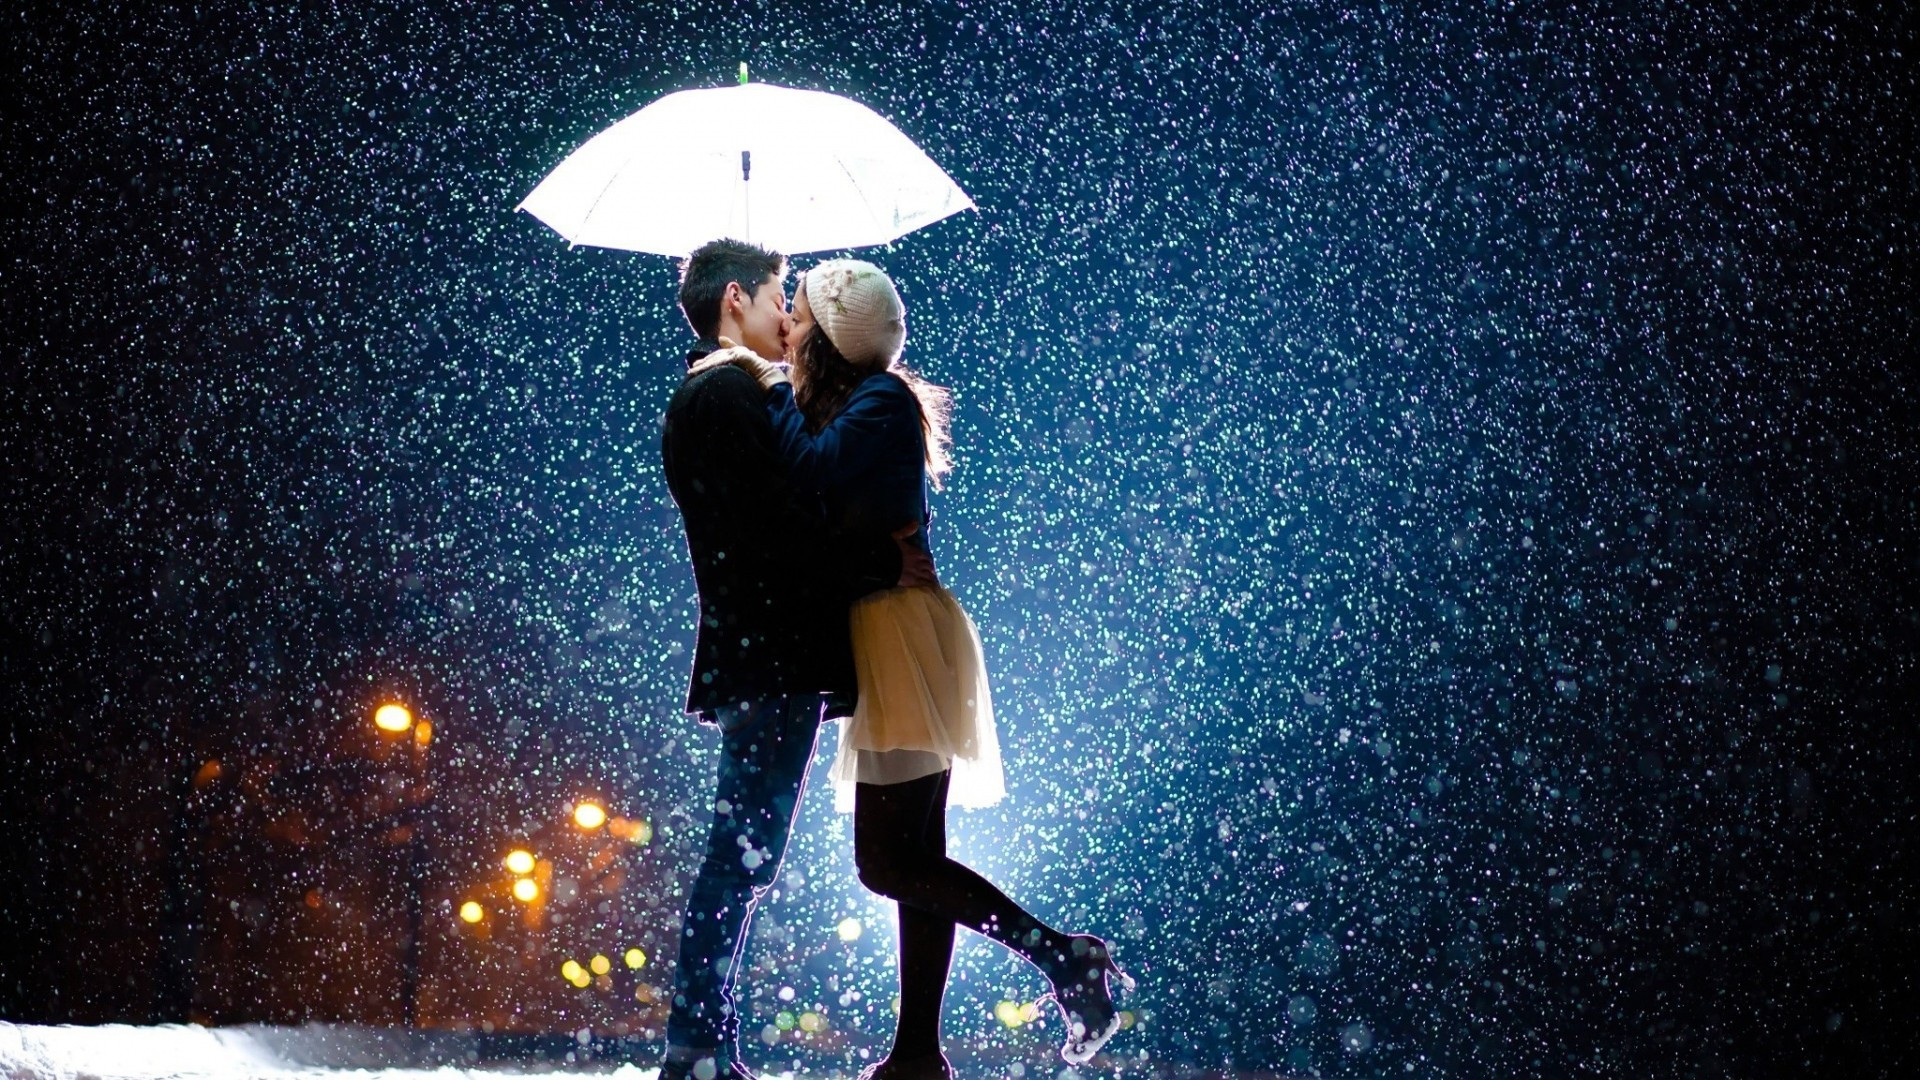 Download Love Couple Rain Wallpaper Gallery